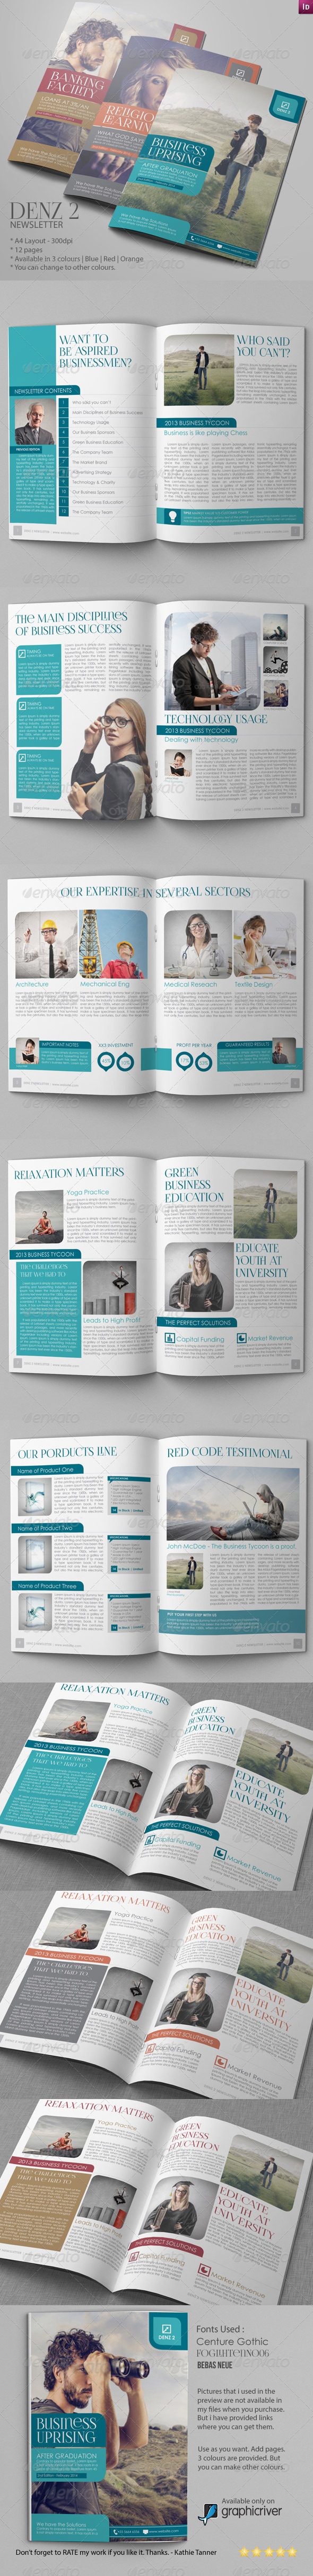 GraphicRiver Business Newsletter Vol VII 6788528